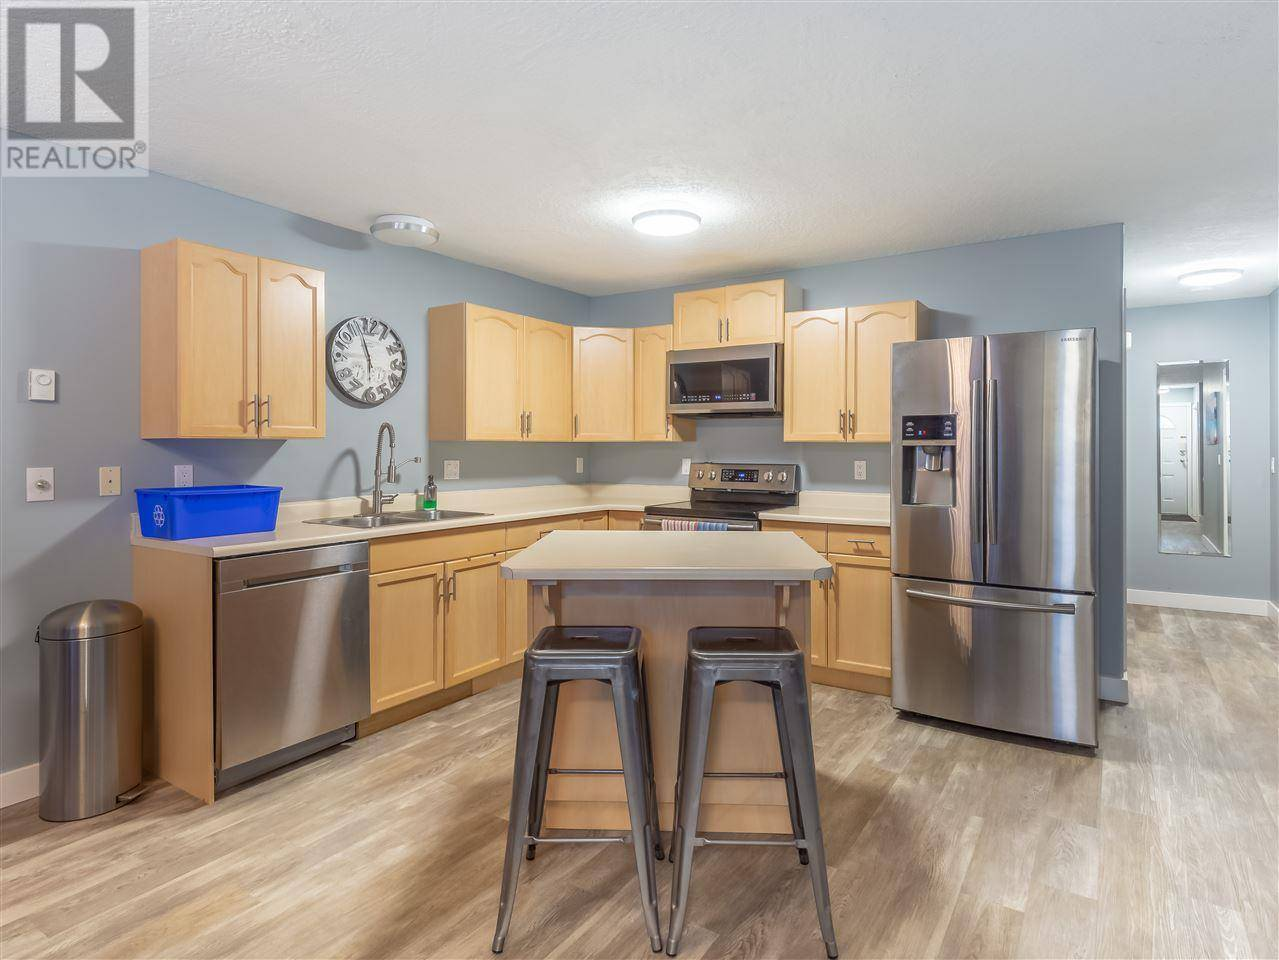 Condo for sale at 1686 Main St Unit 2 Smithers British Columbia - MLS: R2447514